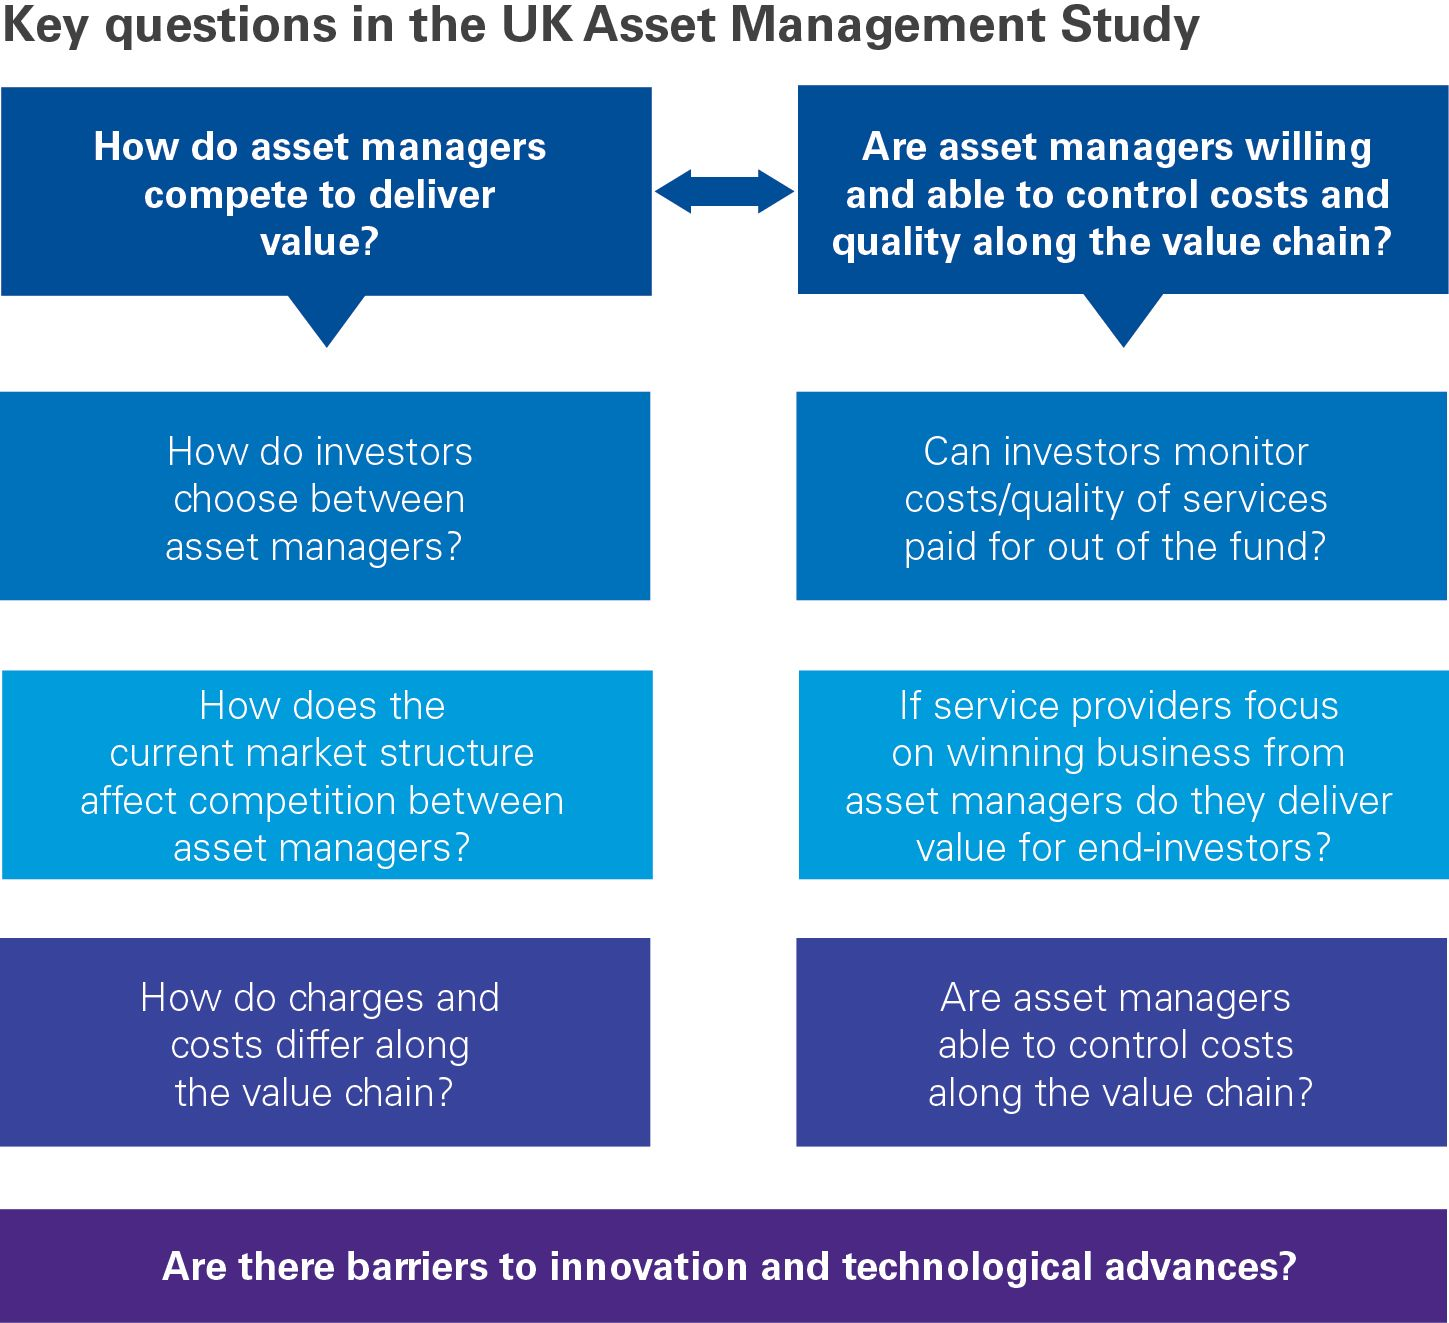 Key questions in the UK Asset Management study infographic